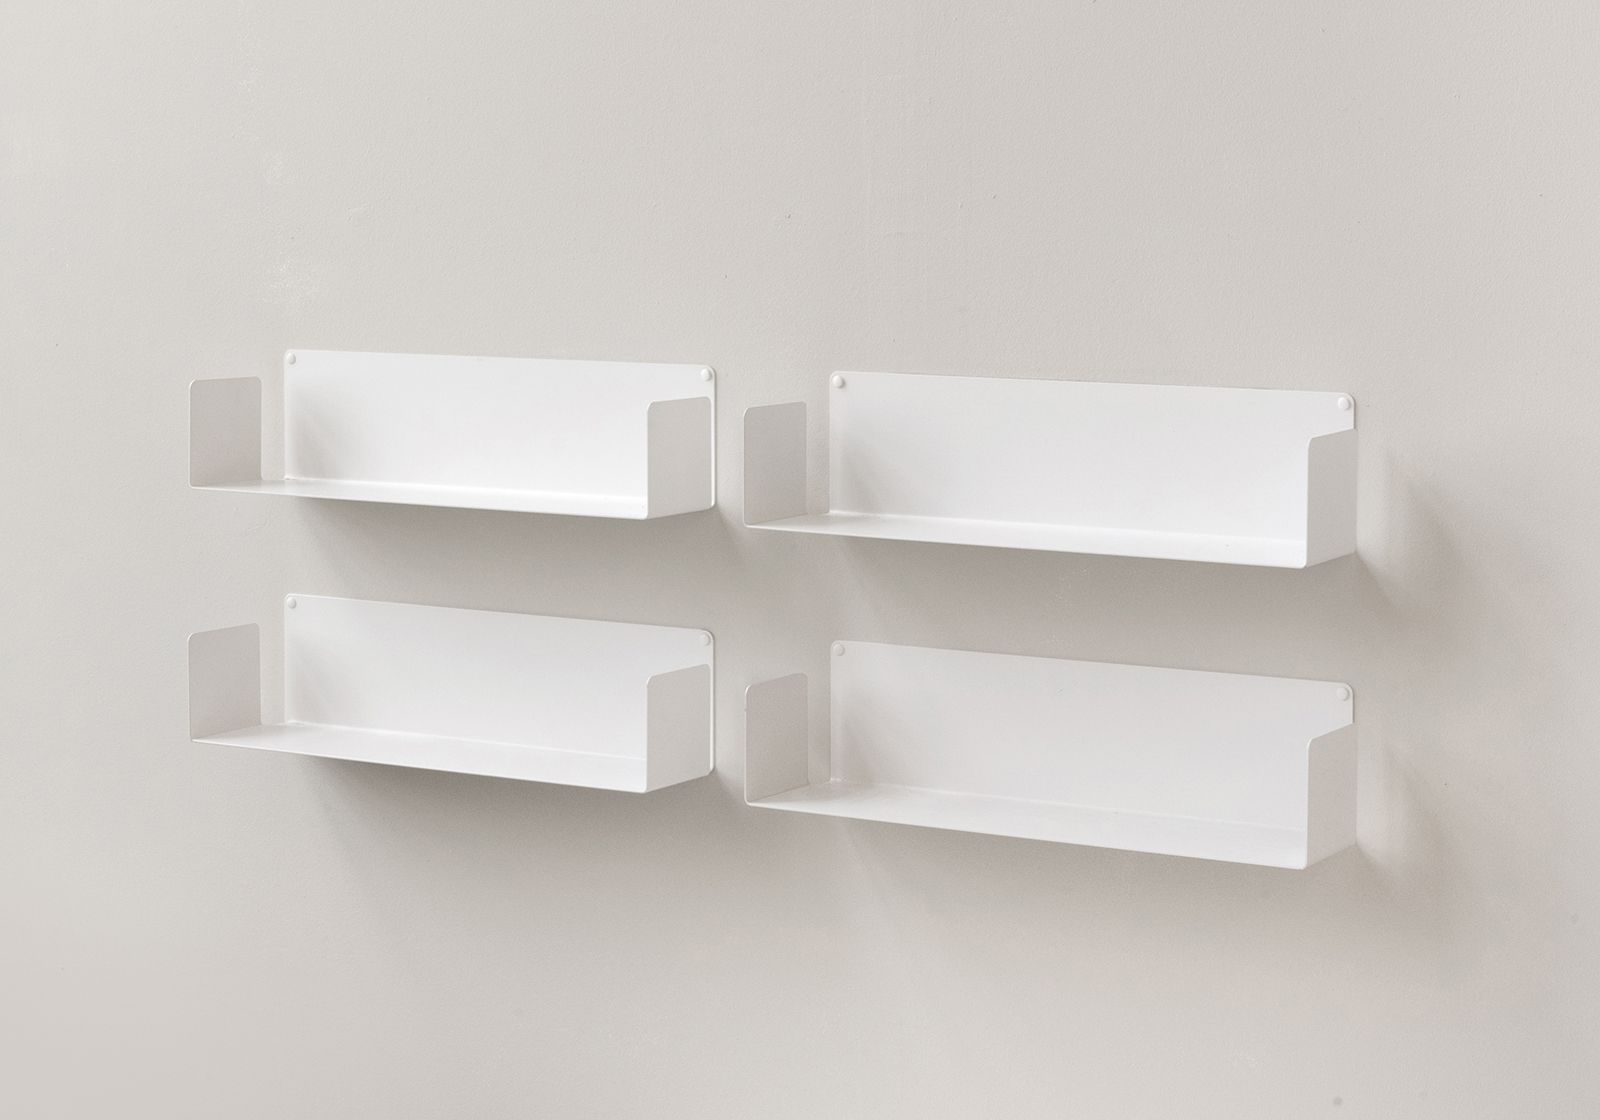 252 floating shelves u 60 cm set of 4